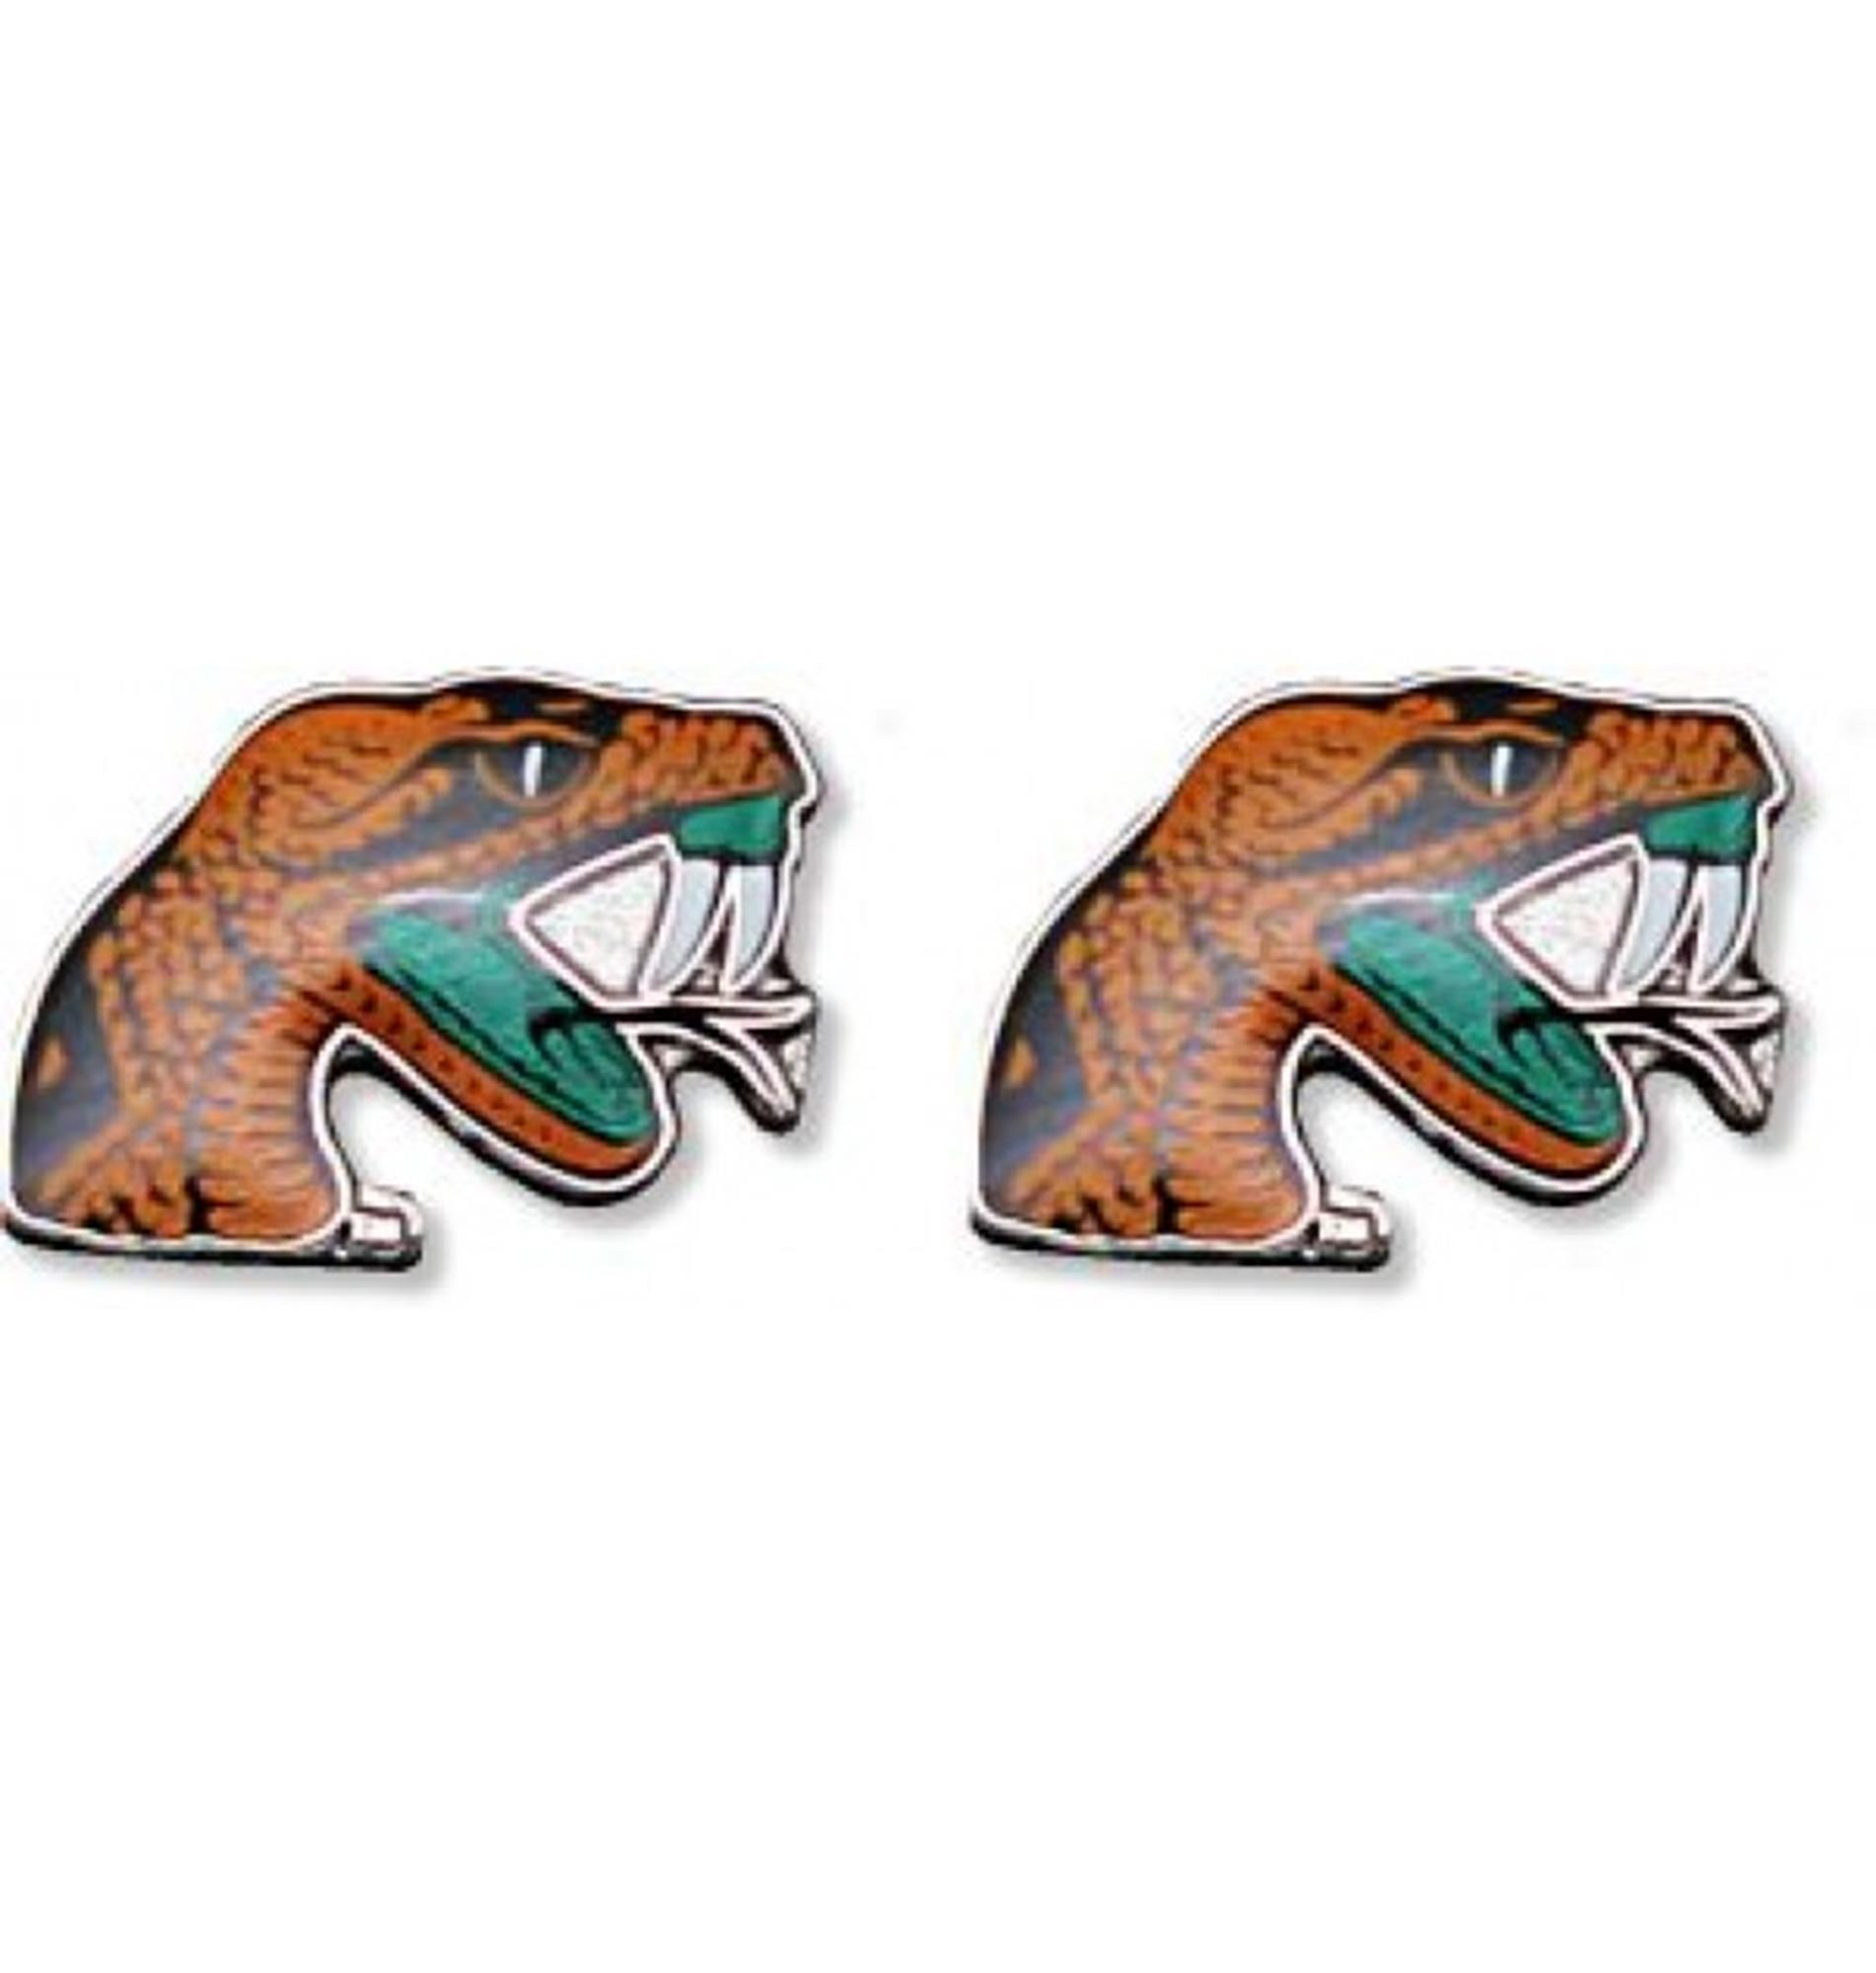 Florida A&M - NCAA Team Logo Post Earrings w/Gift Box